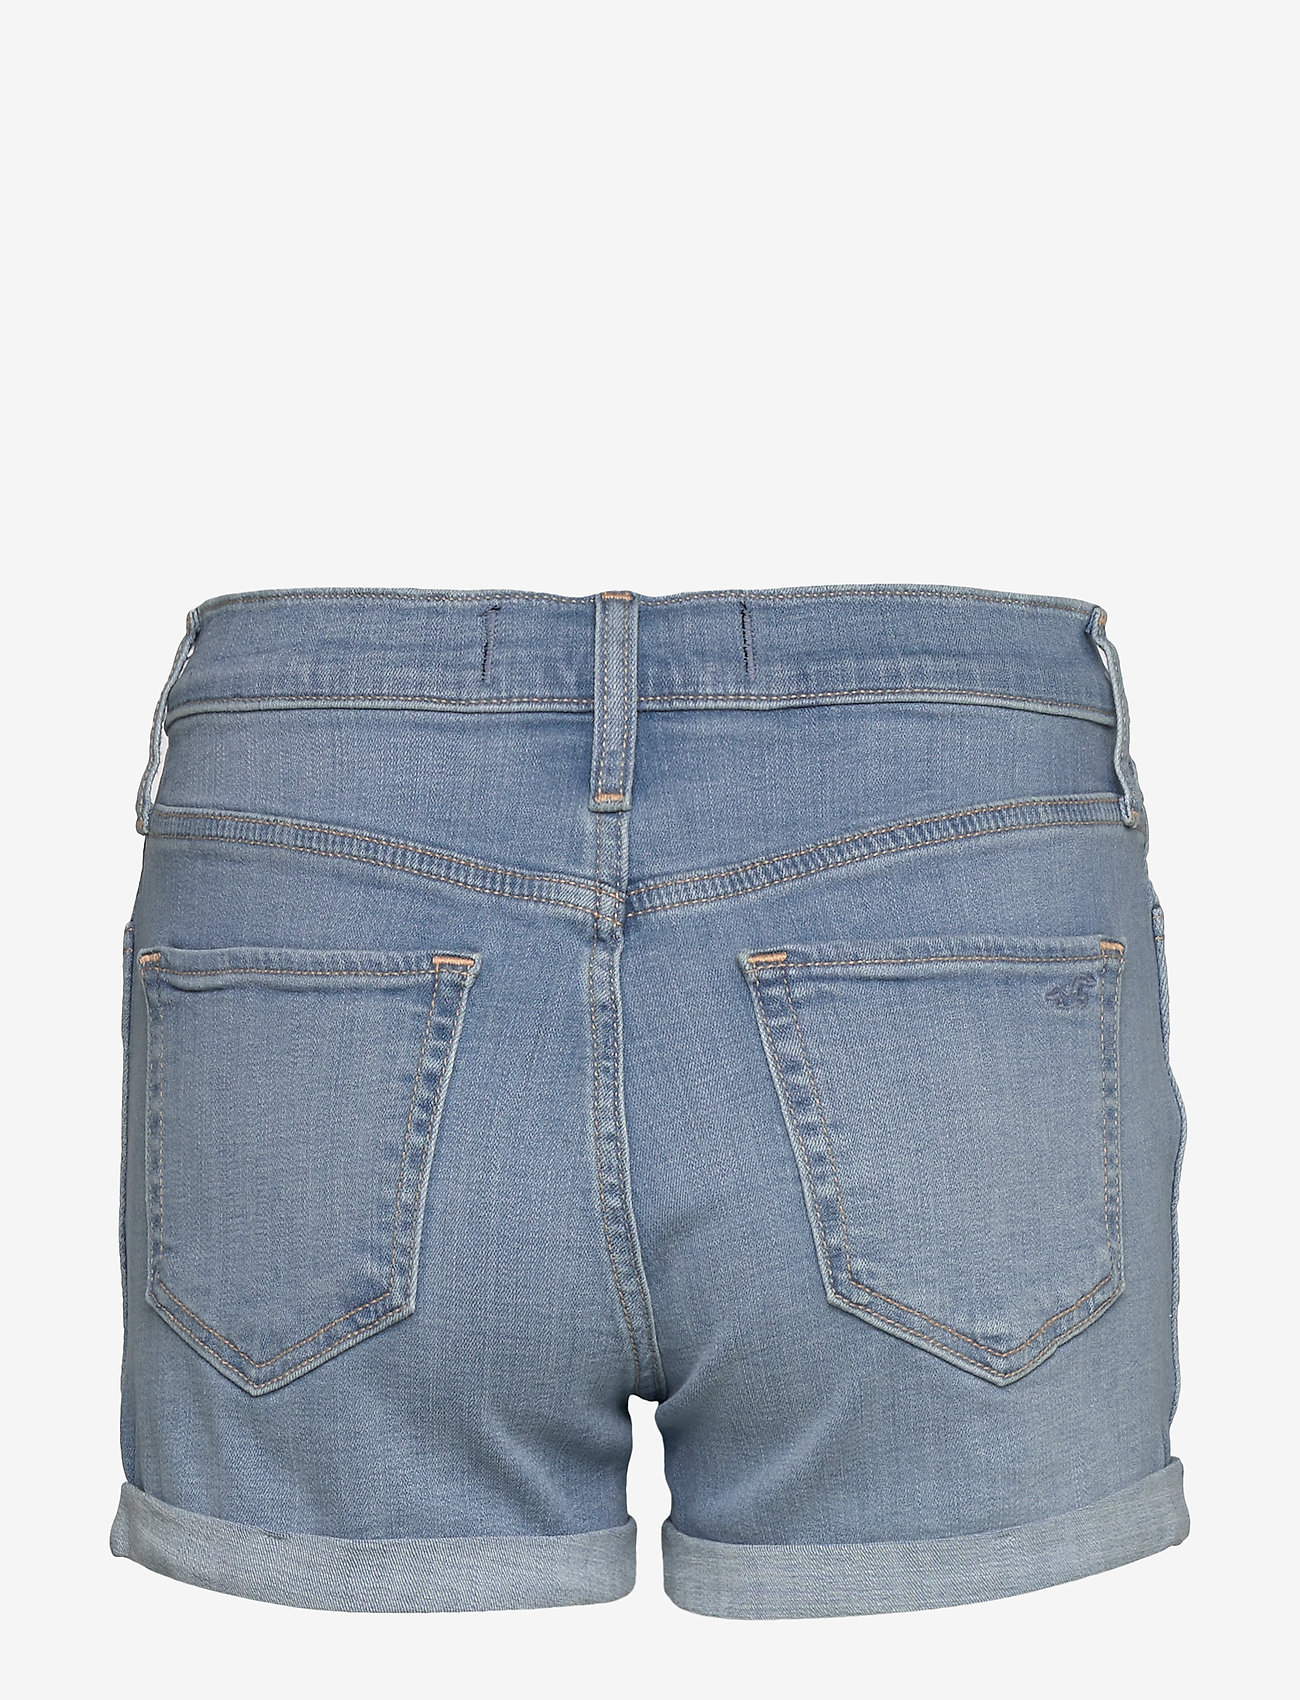 Shorts (Light Destroy) (27 €) - Hollister JB0Gj